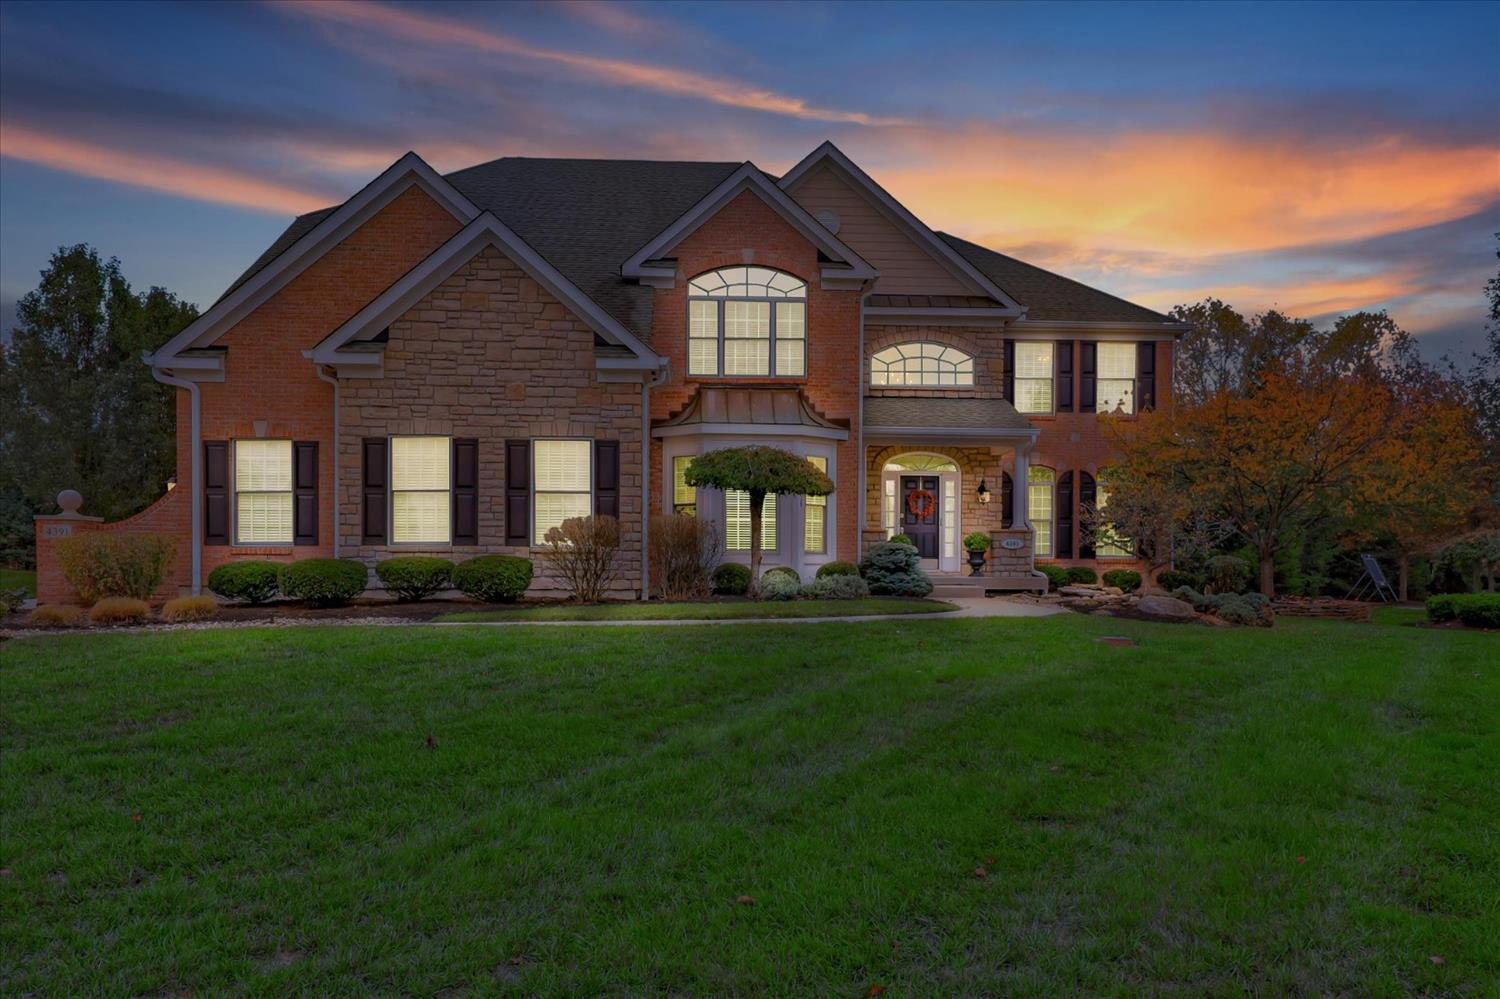 Photo of 4391 Dorchester Court, West Chester, OH 45069